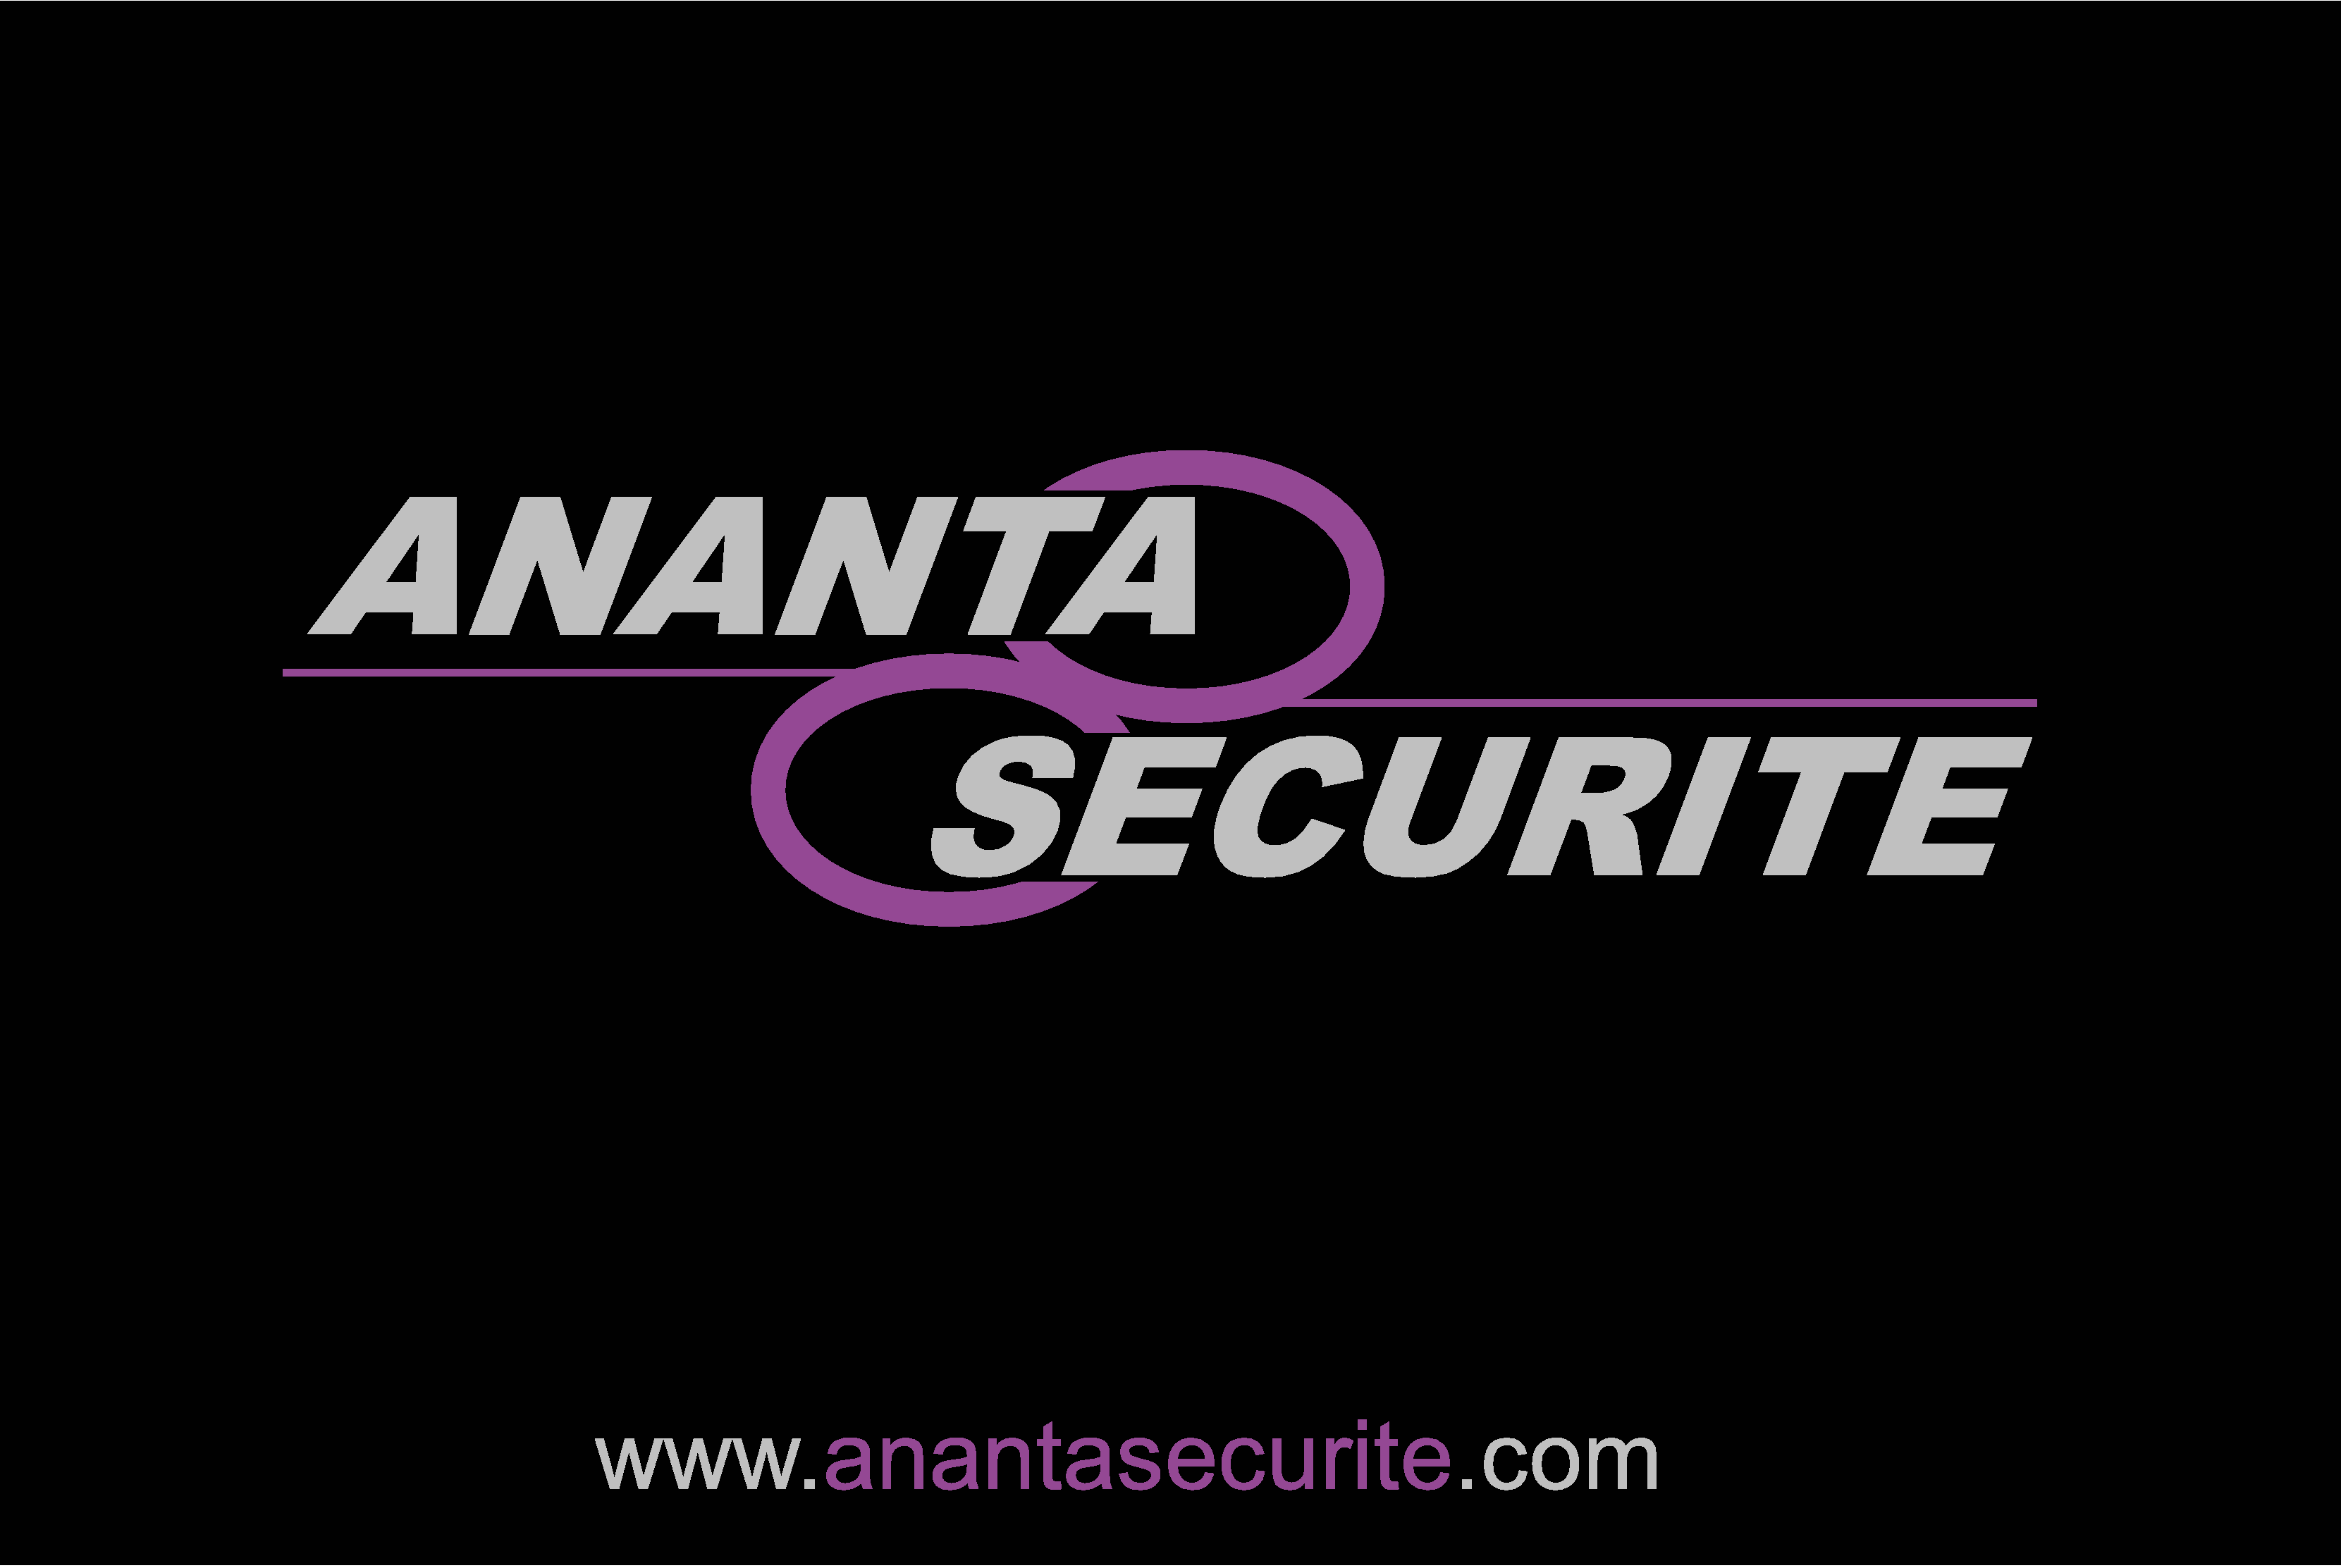 AnantaSecurite-Logo